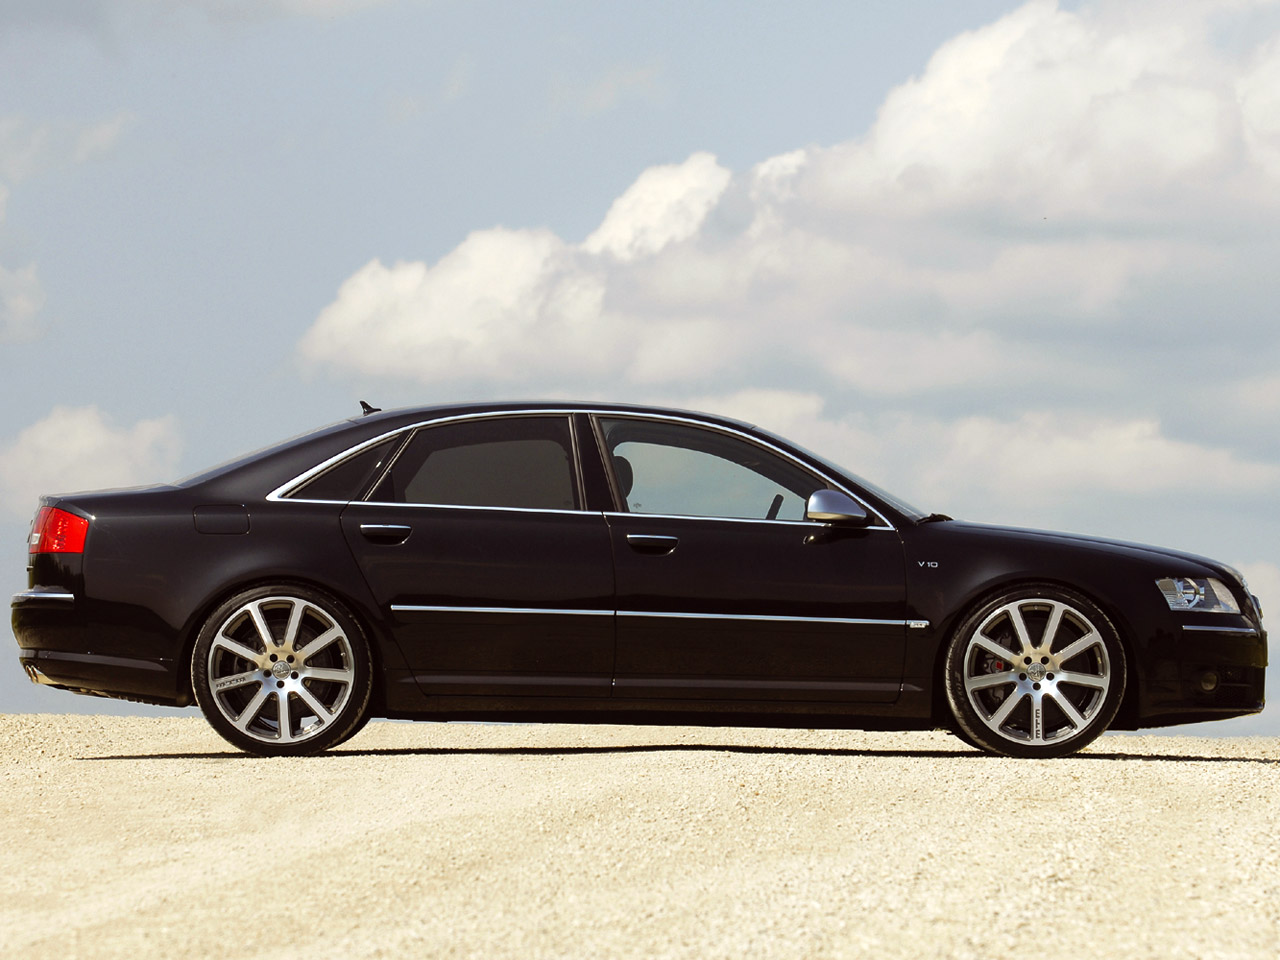 MTM Audi S8 photos - PhotoGallery with 3 pics| CarsBase.com